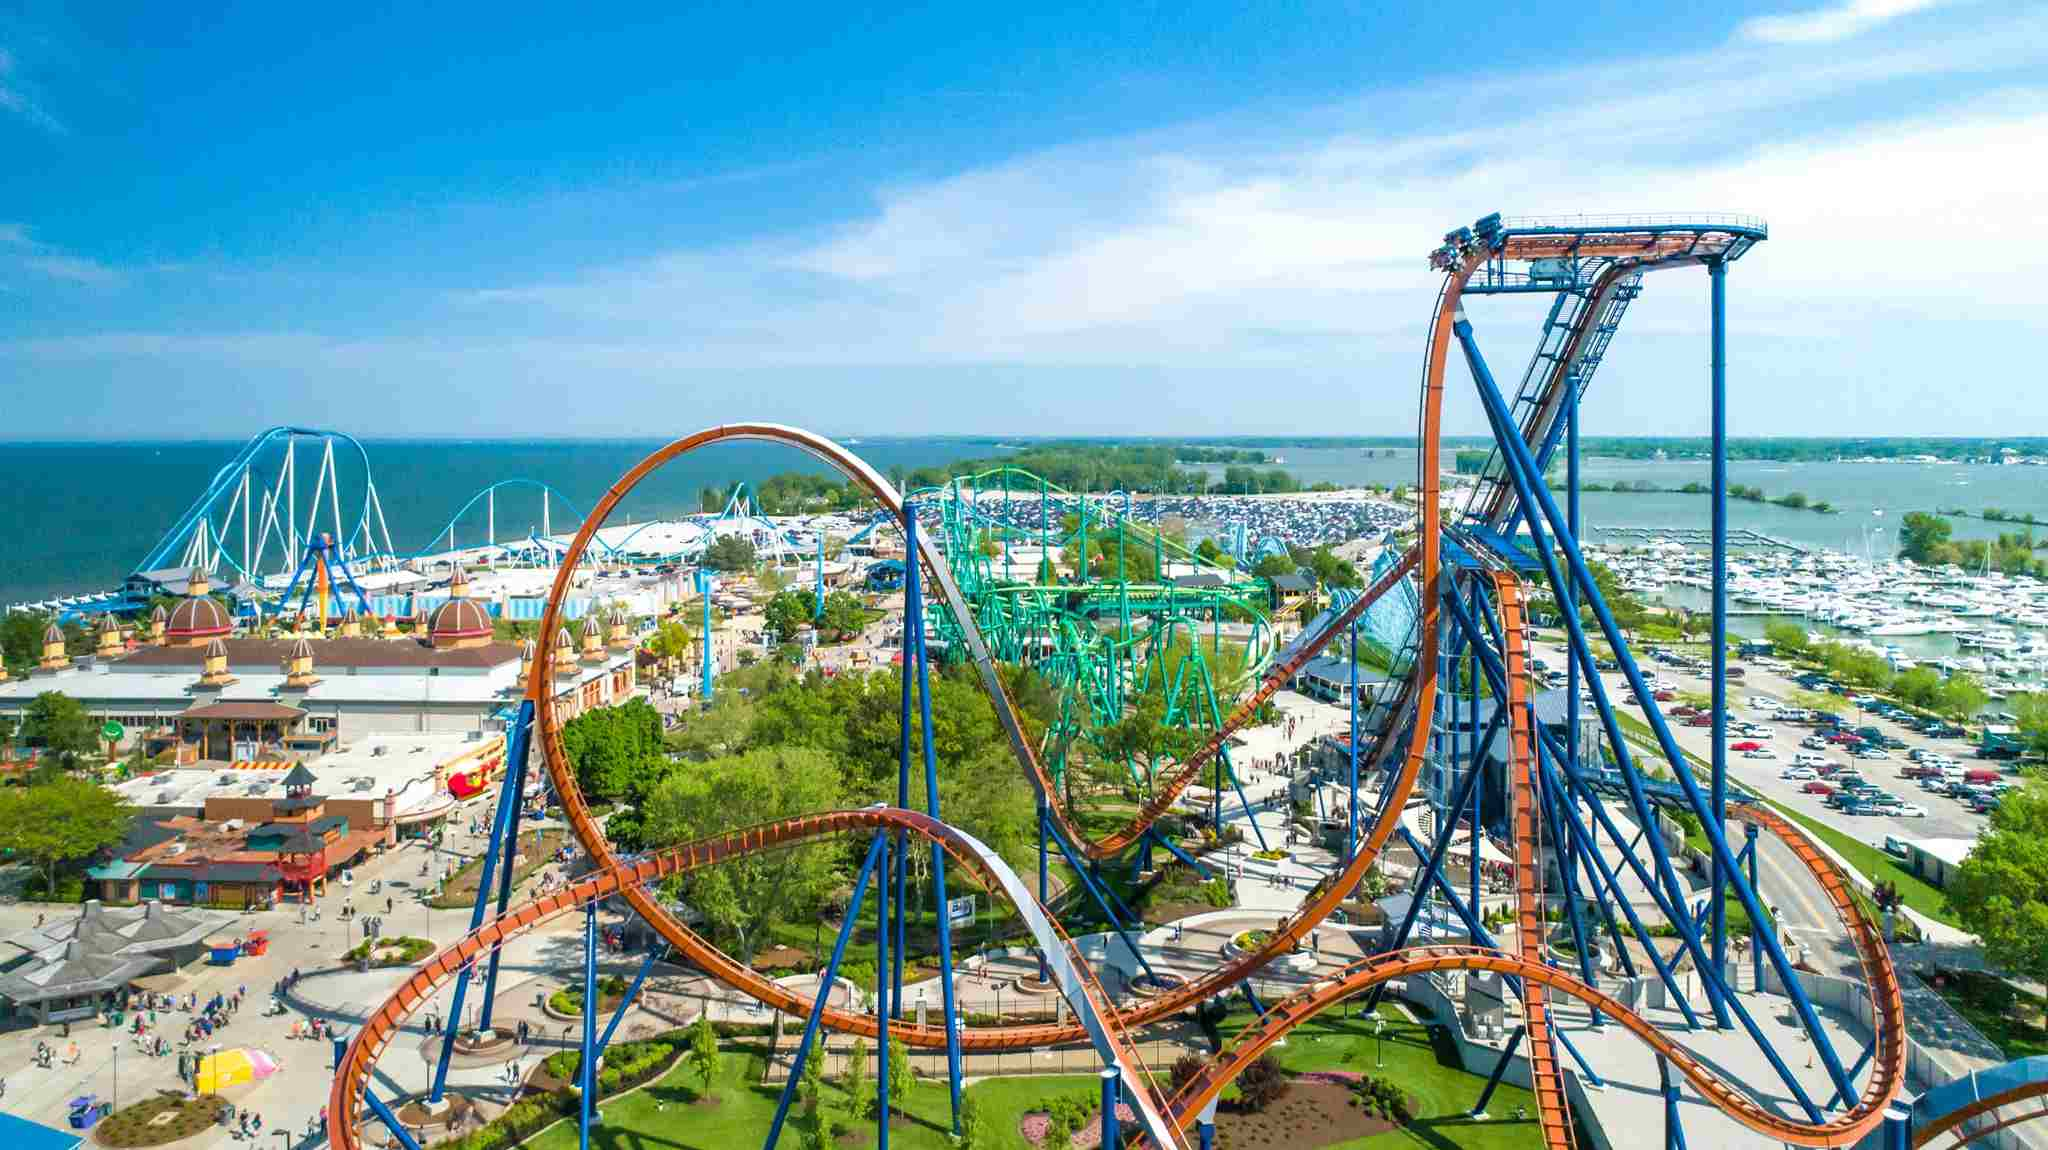 Valravn with rides behind it at Cedar Point